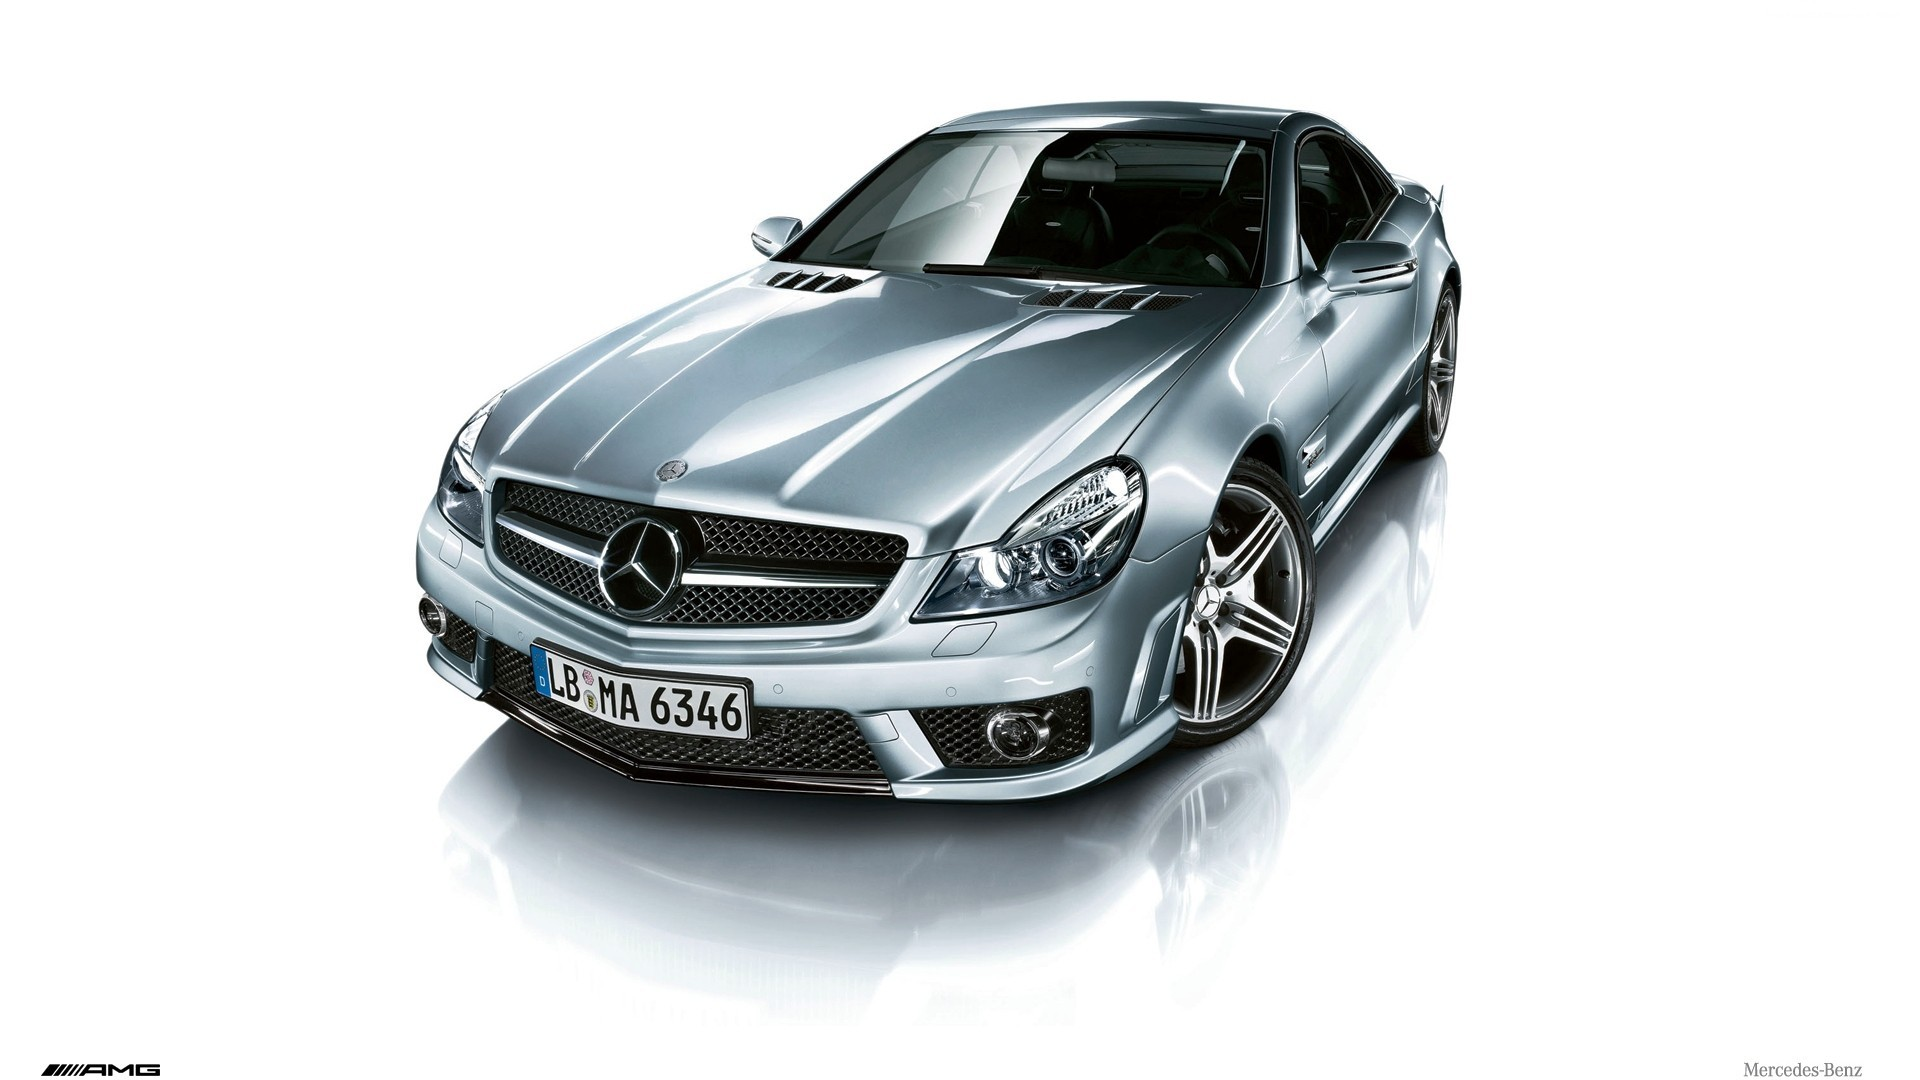 cars Mercedes-Benz Mercedes-Benz SL-Class HD Wallpaper